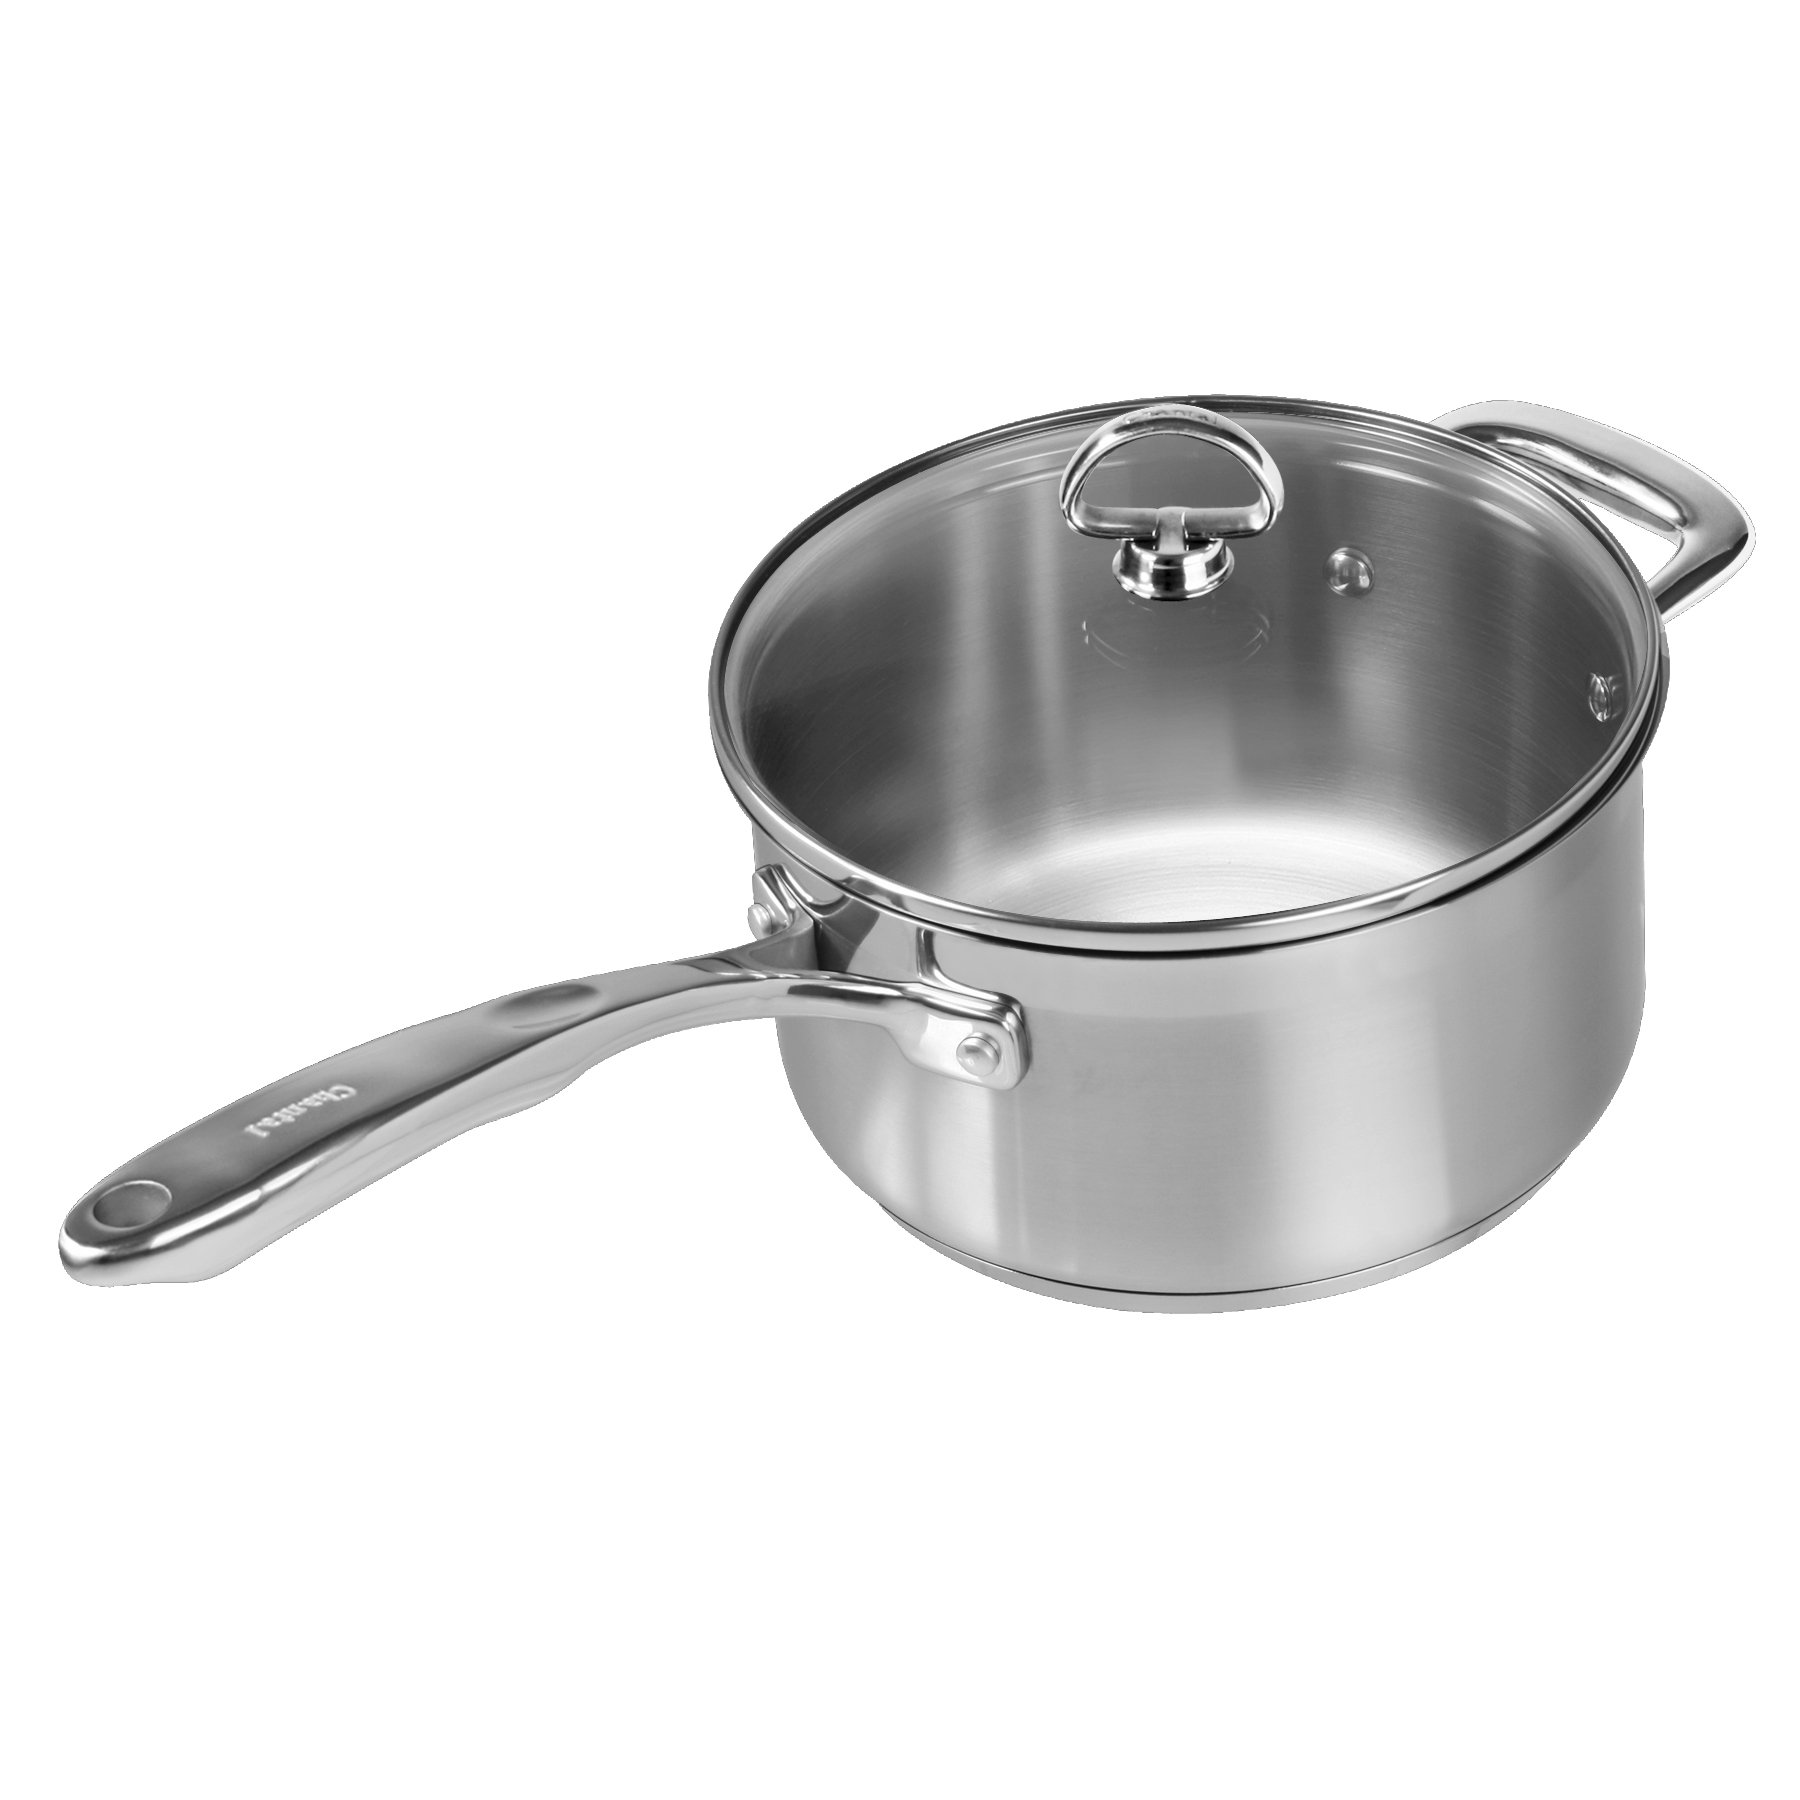 Chantal SLIN35-2035 Induction 21 Steel Sauce Pan with Glass Tempered Lid (3.5 Quart)